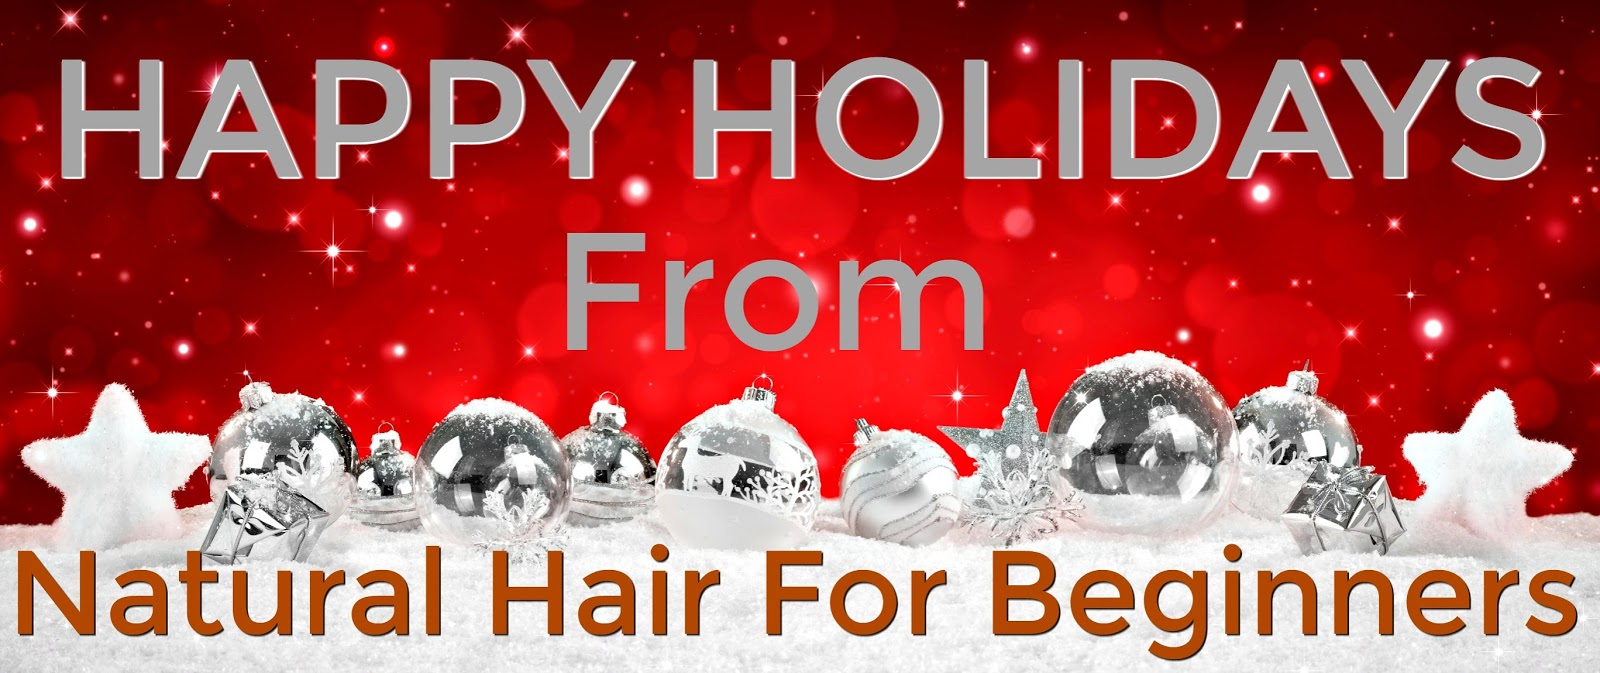 Happy Holidays From Natural Hair For Beginners